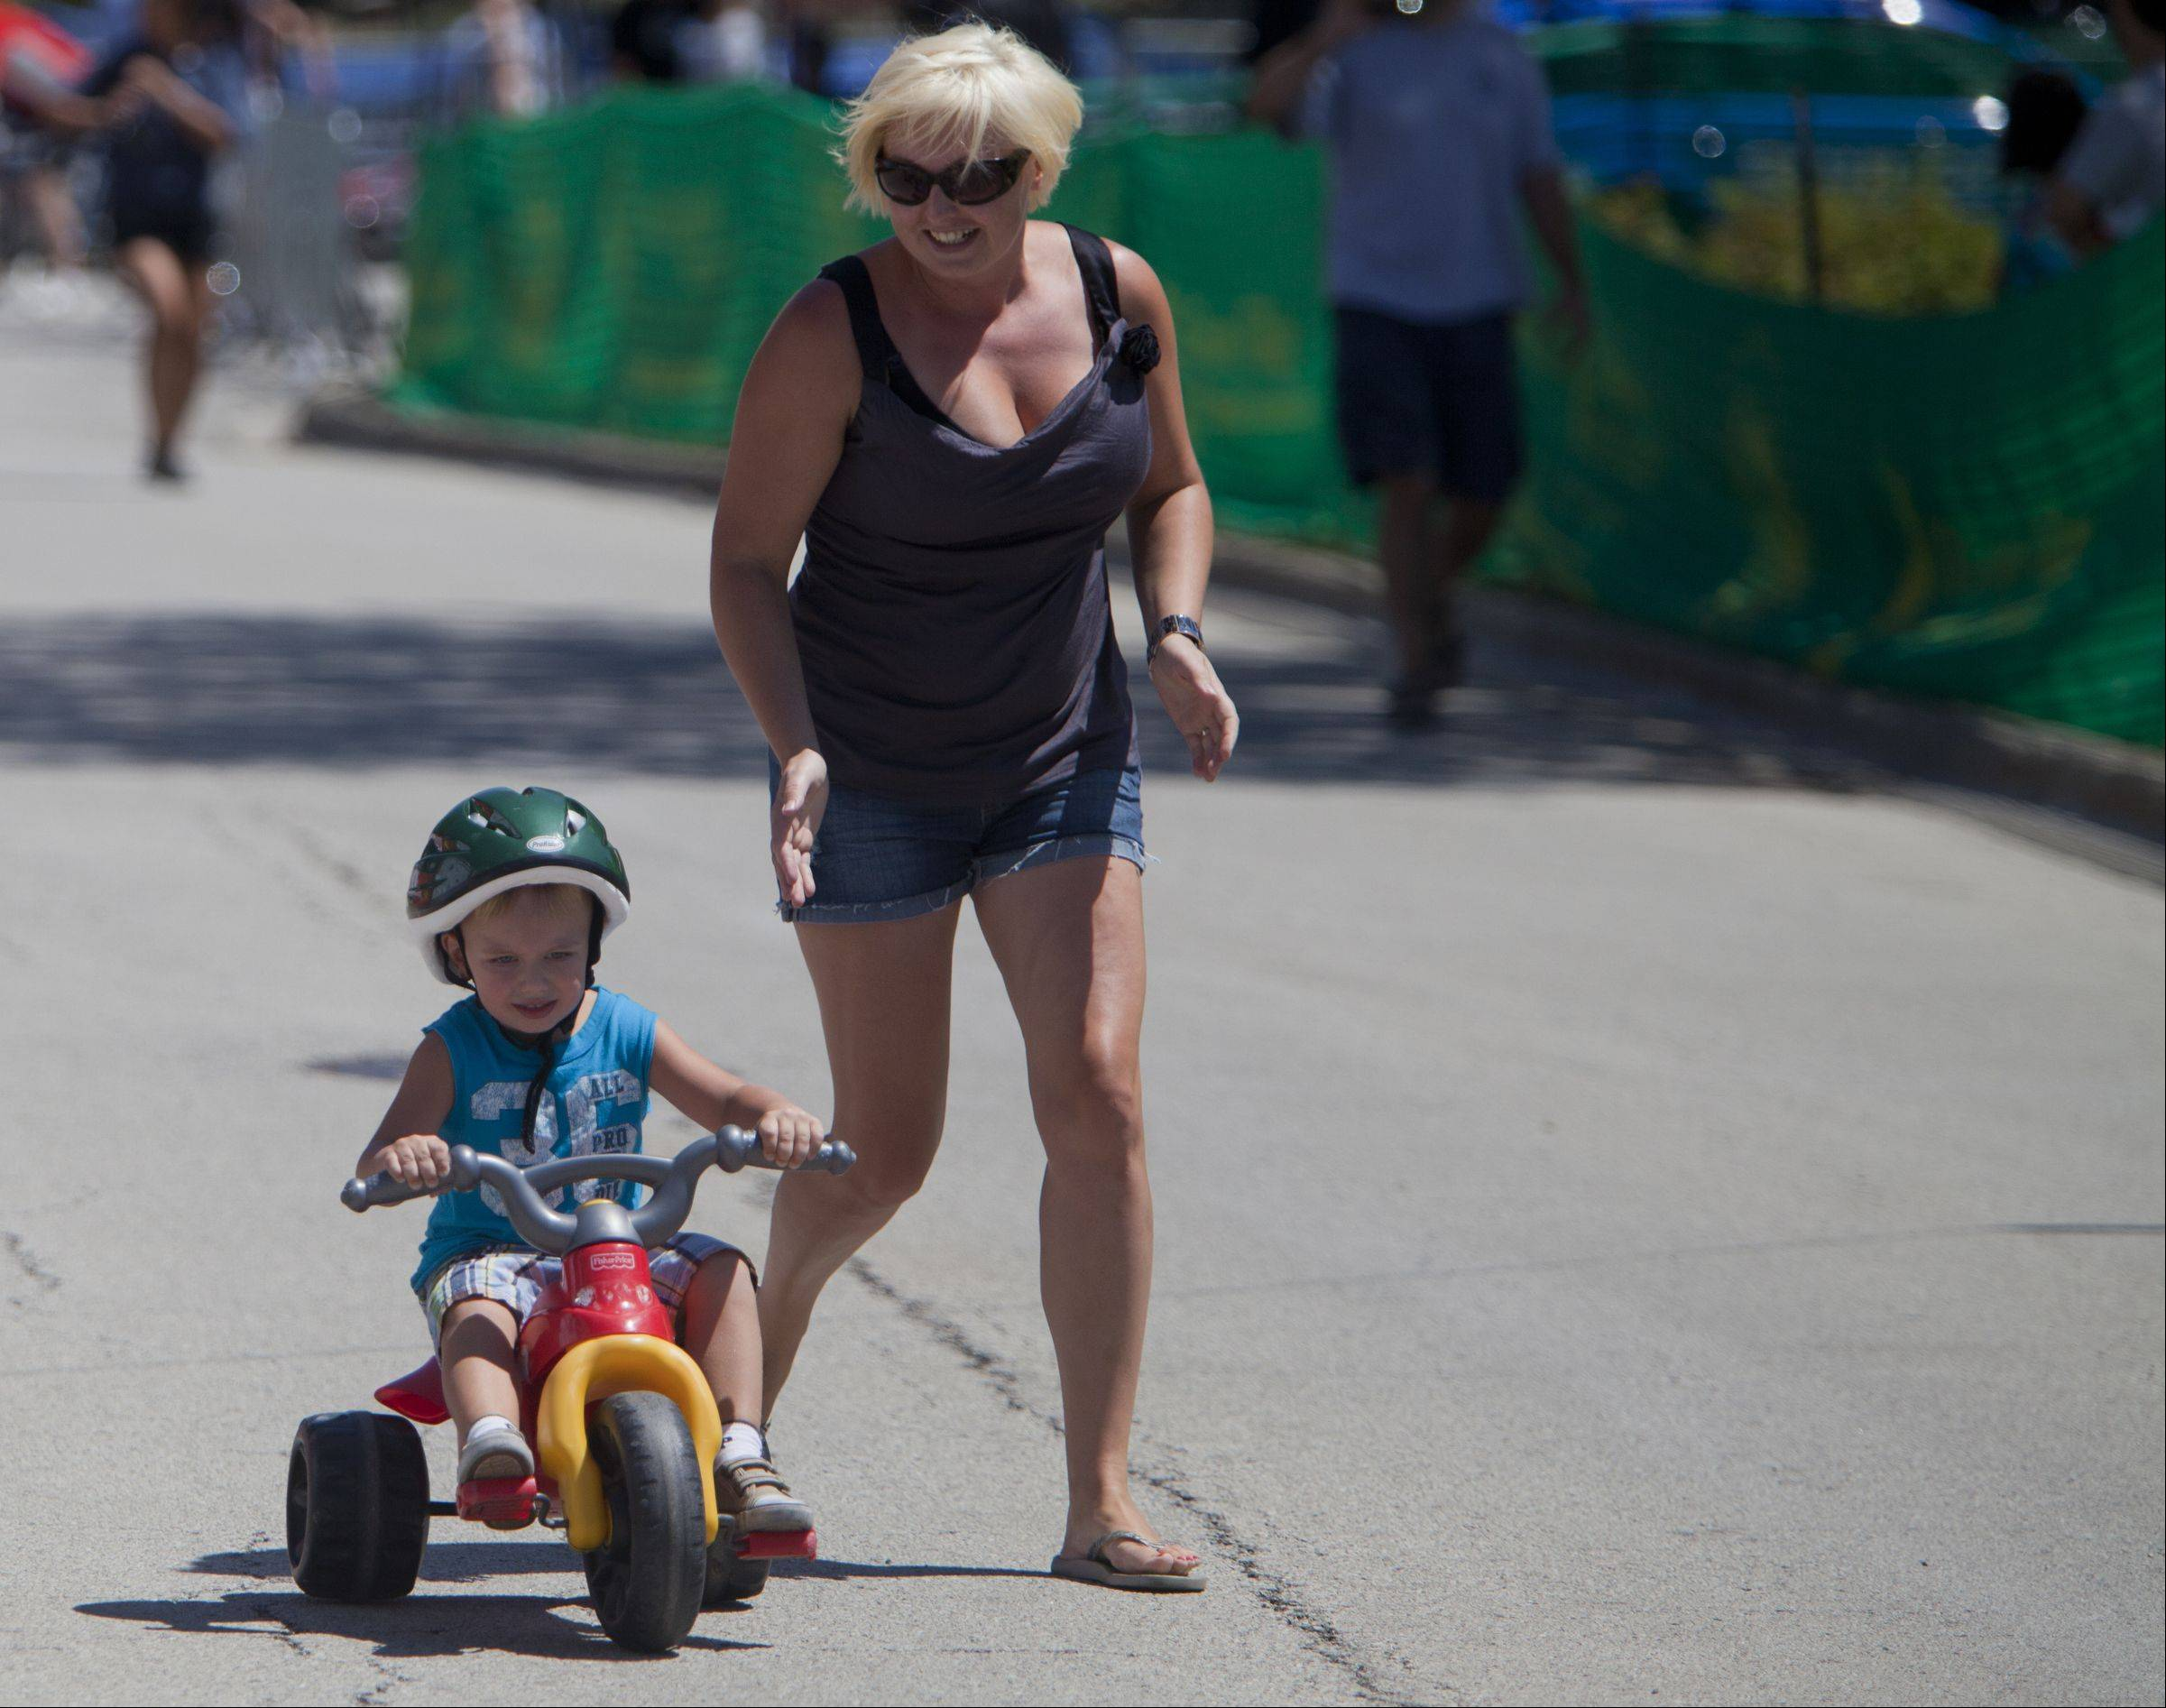 Agnirszka Sosinska runs next to her son Nathan, 4, during the Shamino Big Wheels event during the third day of the Tour of Elk Grove.